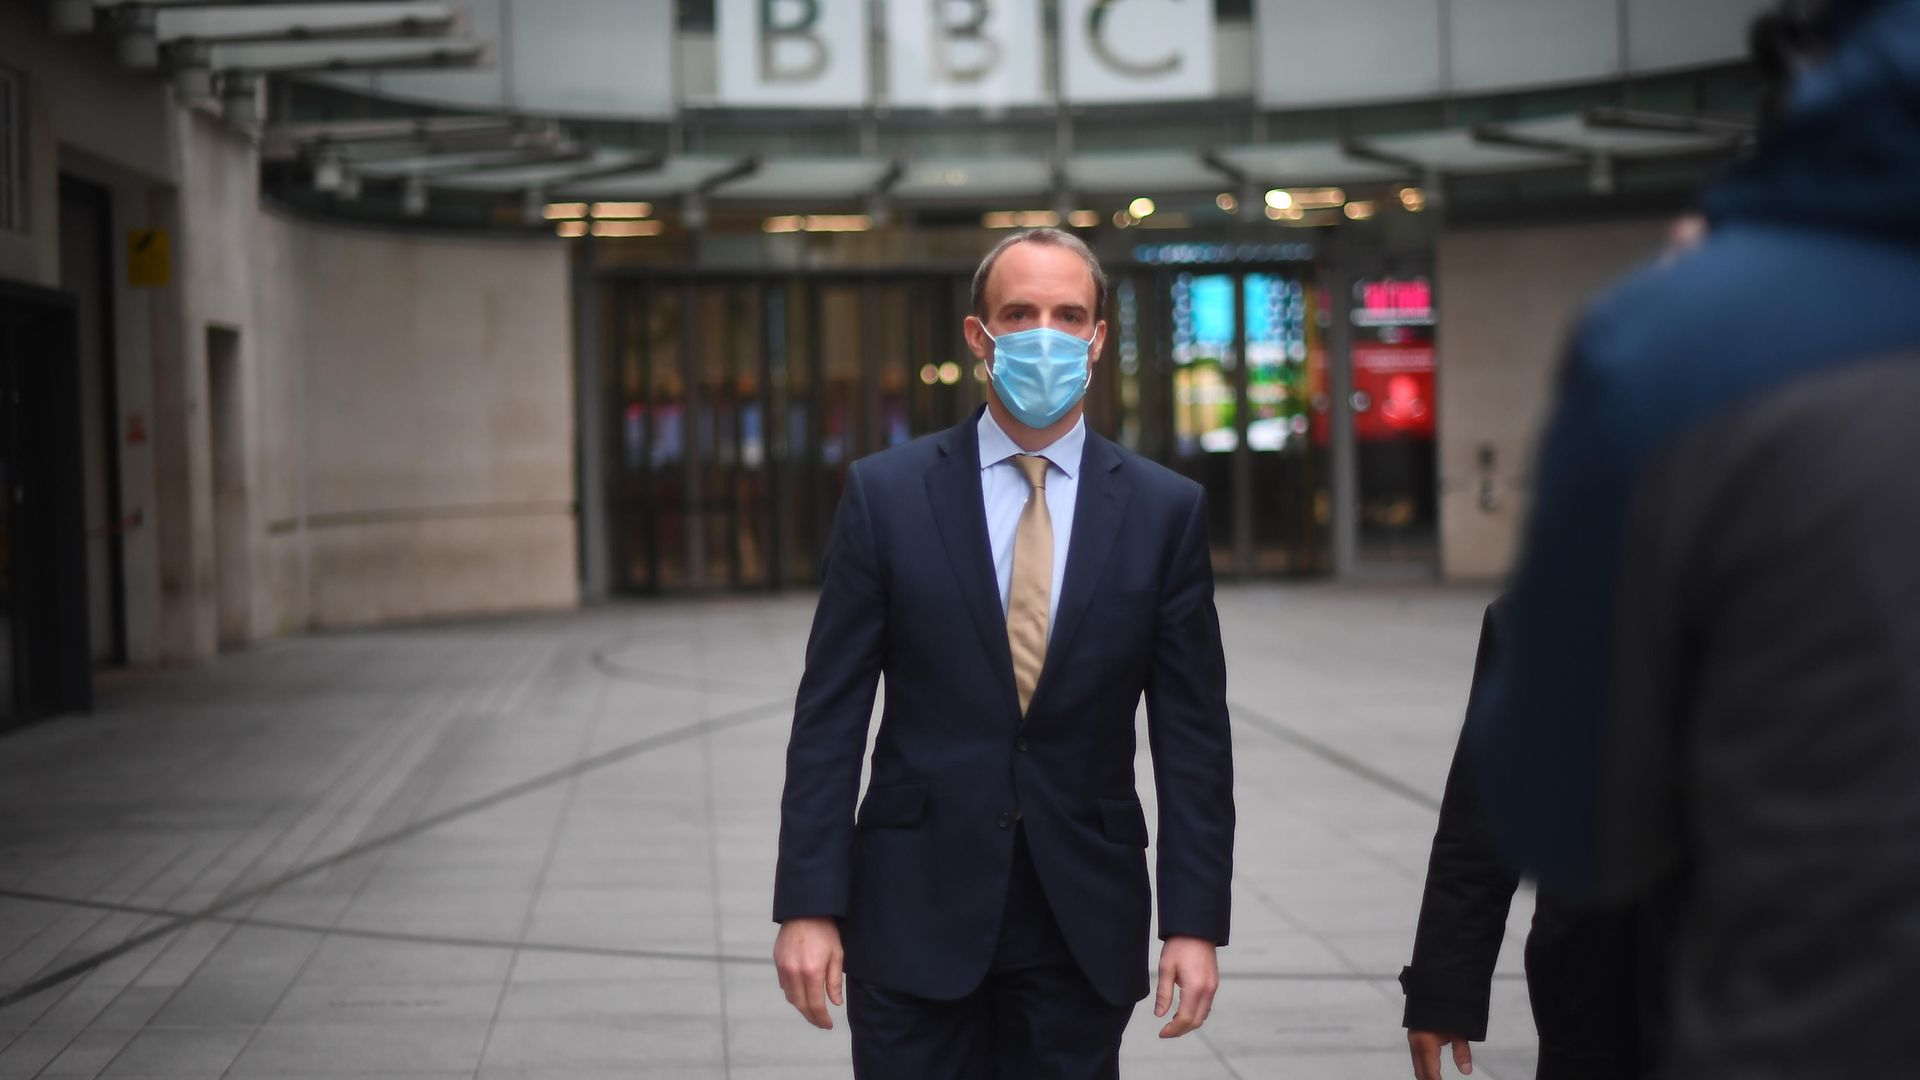 Foreign Secretary Dominic Raab speaks to the media outside BBC Broadcasting House in central London after his appearance on the BBC1 current affairs programme, The Andrew Marr Show. - Credit: PA